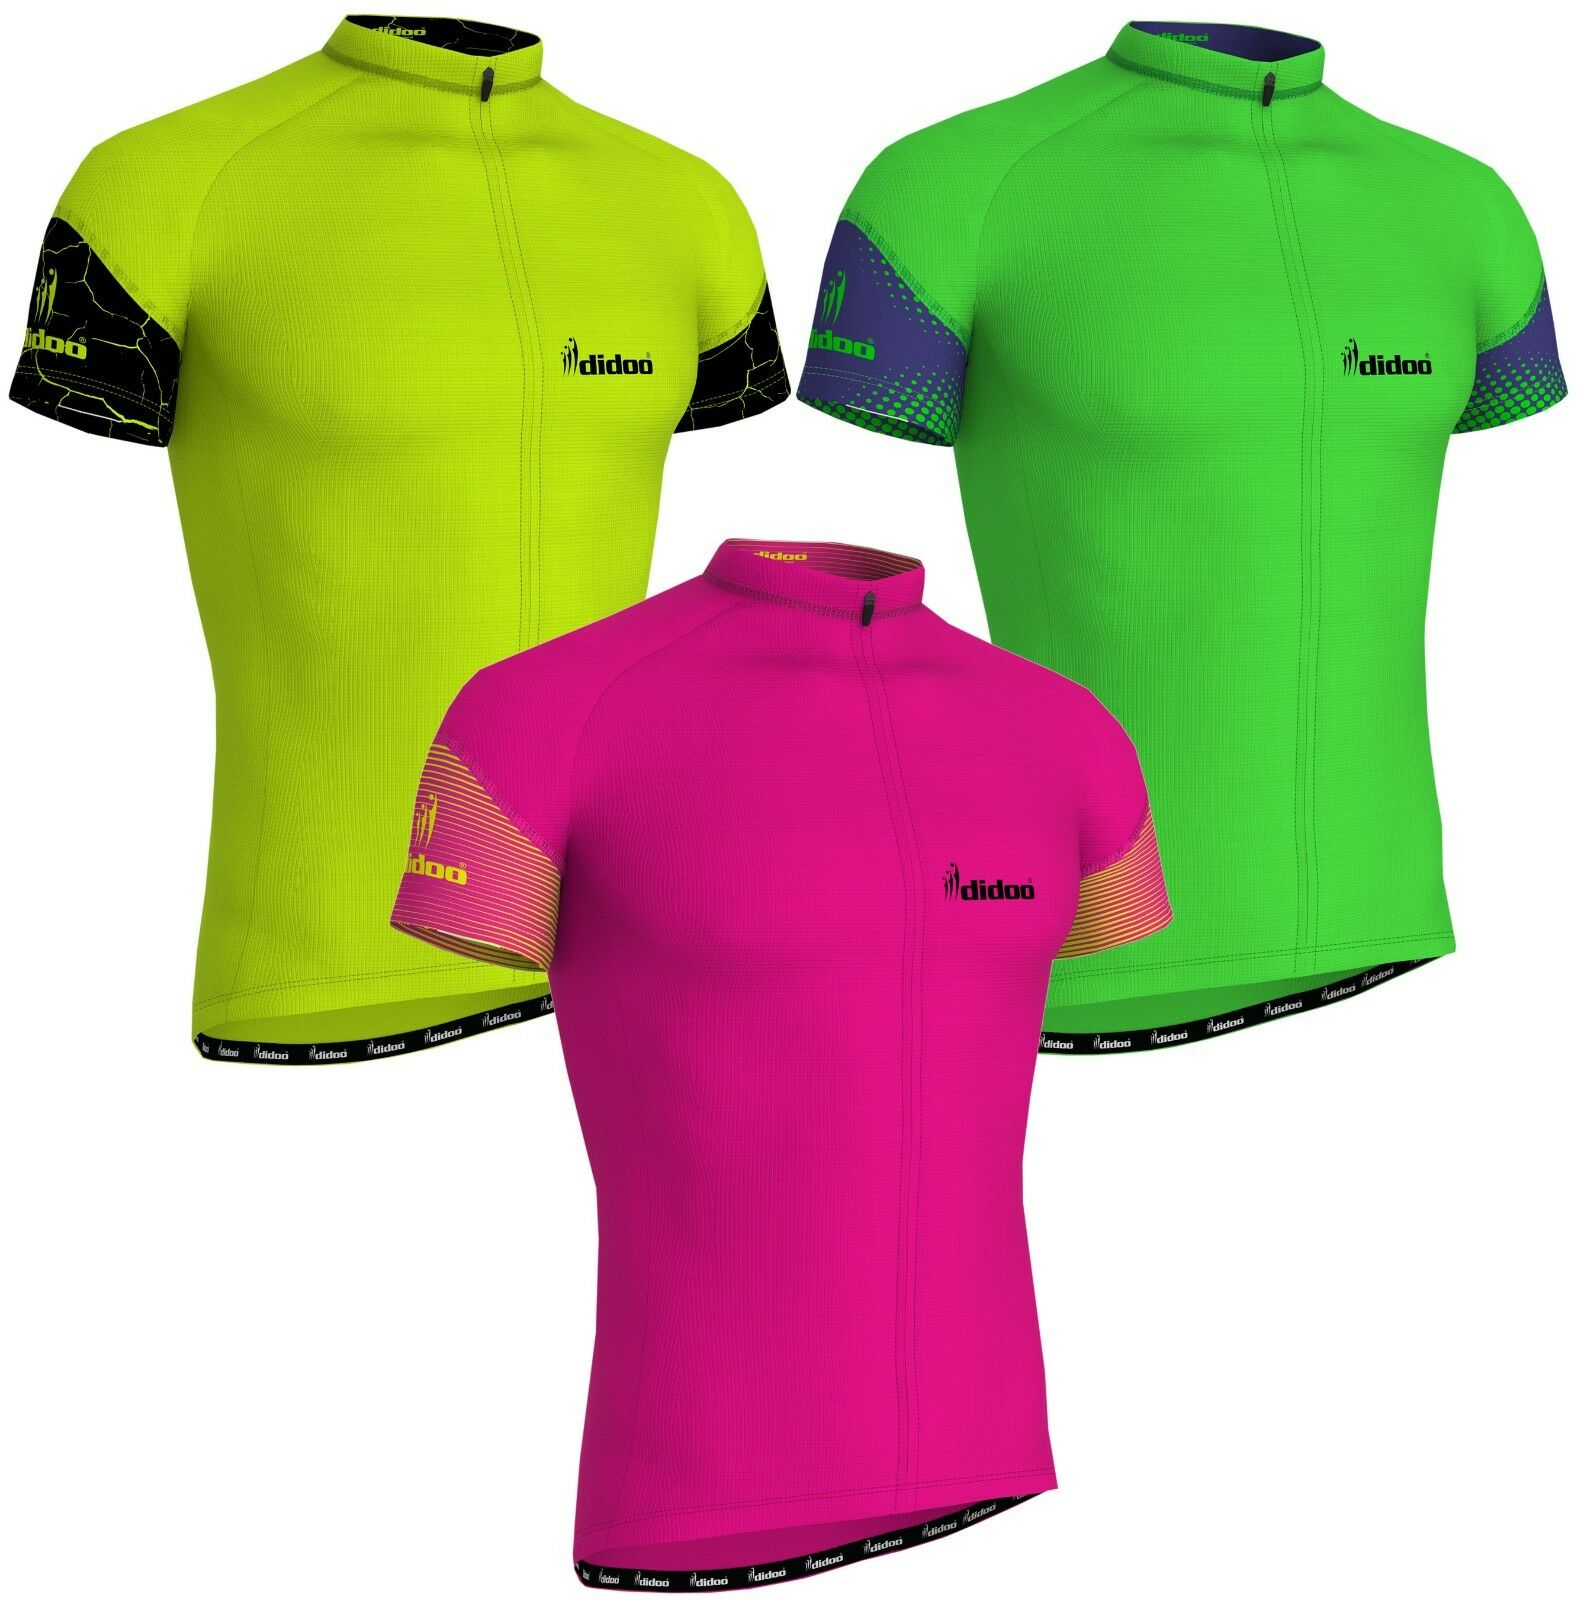 1d3ea0a85 Details about New Men s Half Sleeve Cycling Jerseys Riding T-Shirts Sports  Road Racing Tops